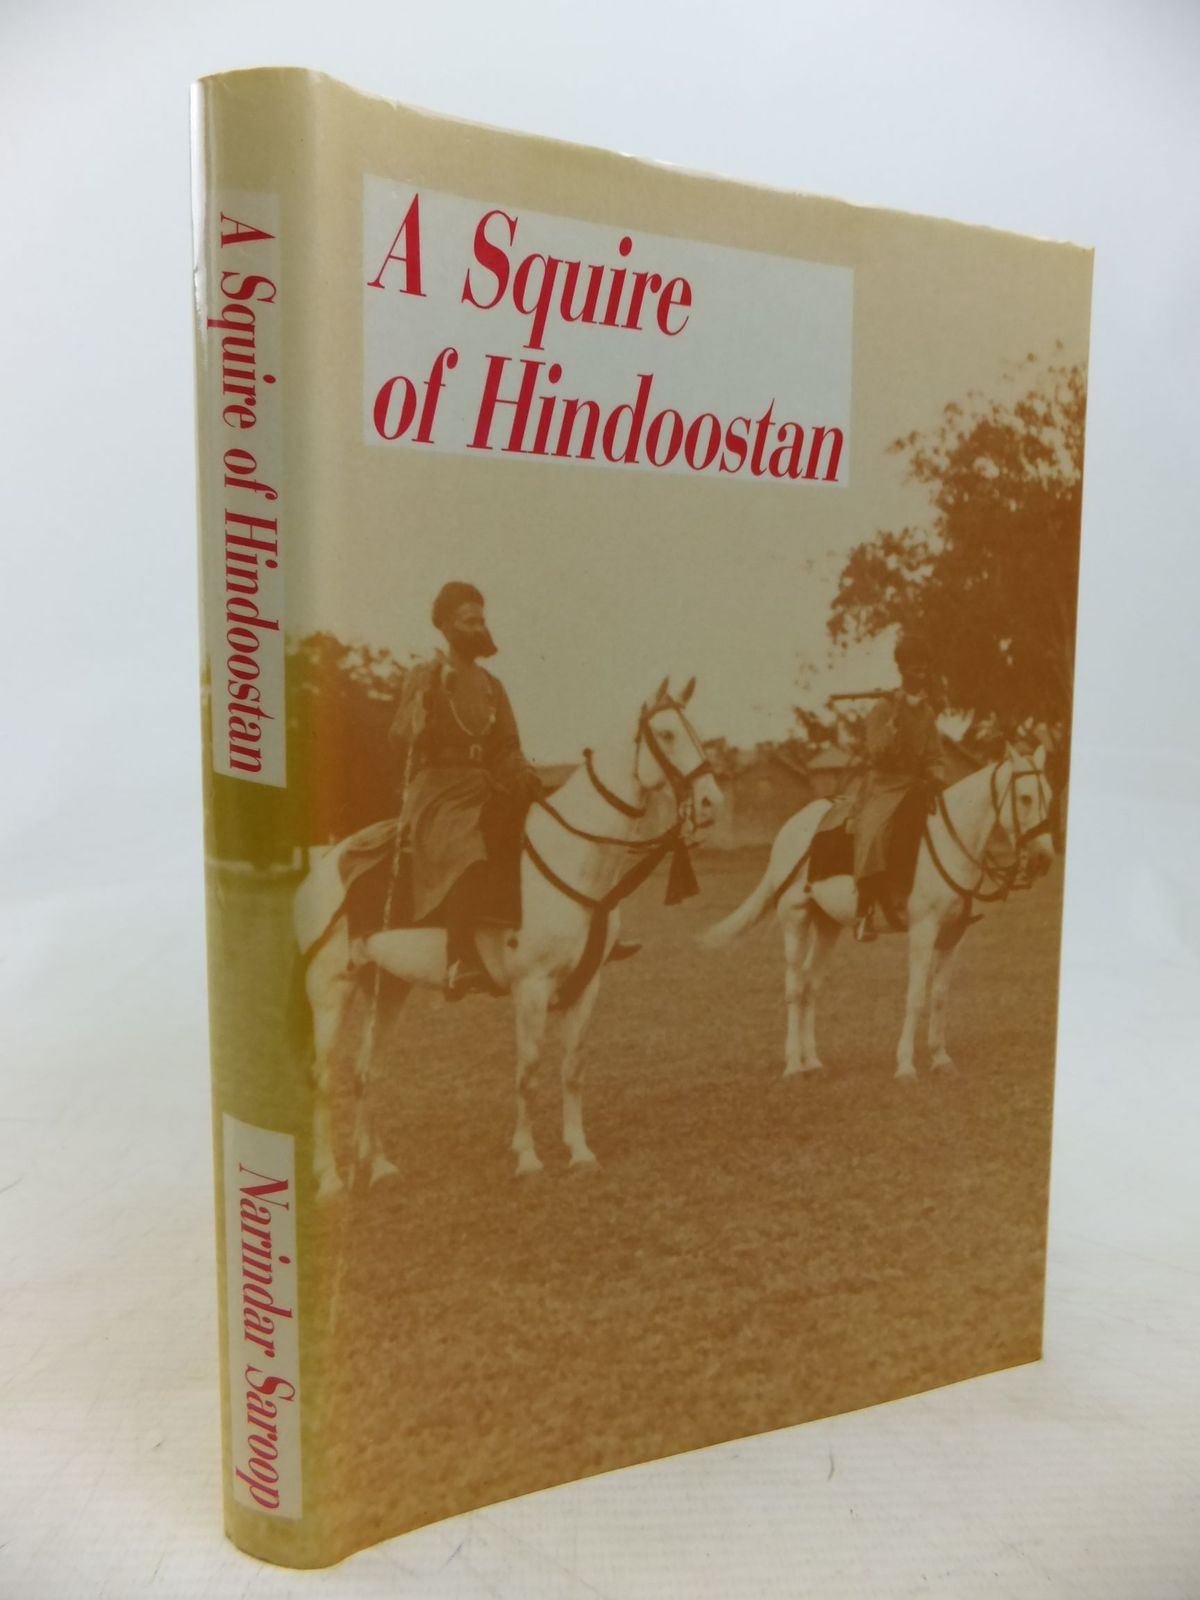 Photo of A SQUIRE OF HINDOOSTAN written by Saroop, Narindar published by Nottingham Court Press (STOCK CODE: 2115233)  for sale by Stella & Rose's Books